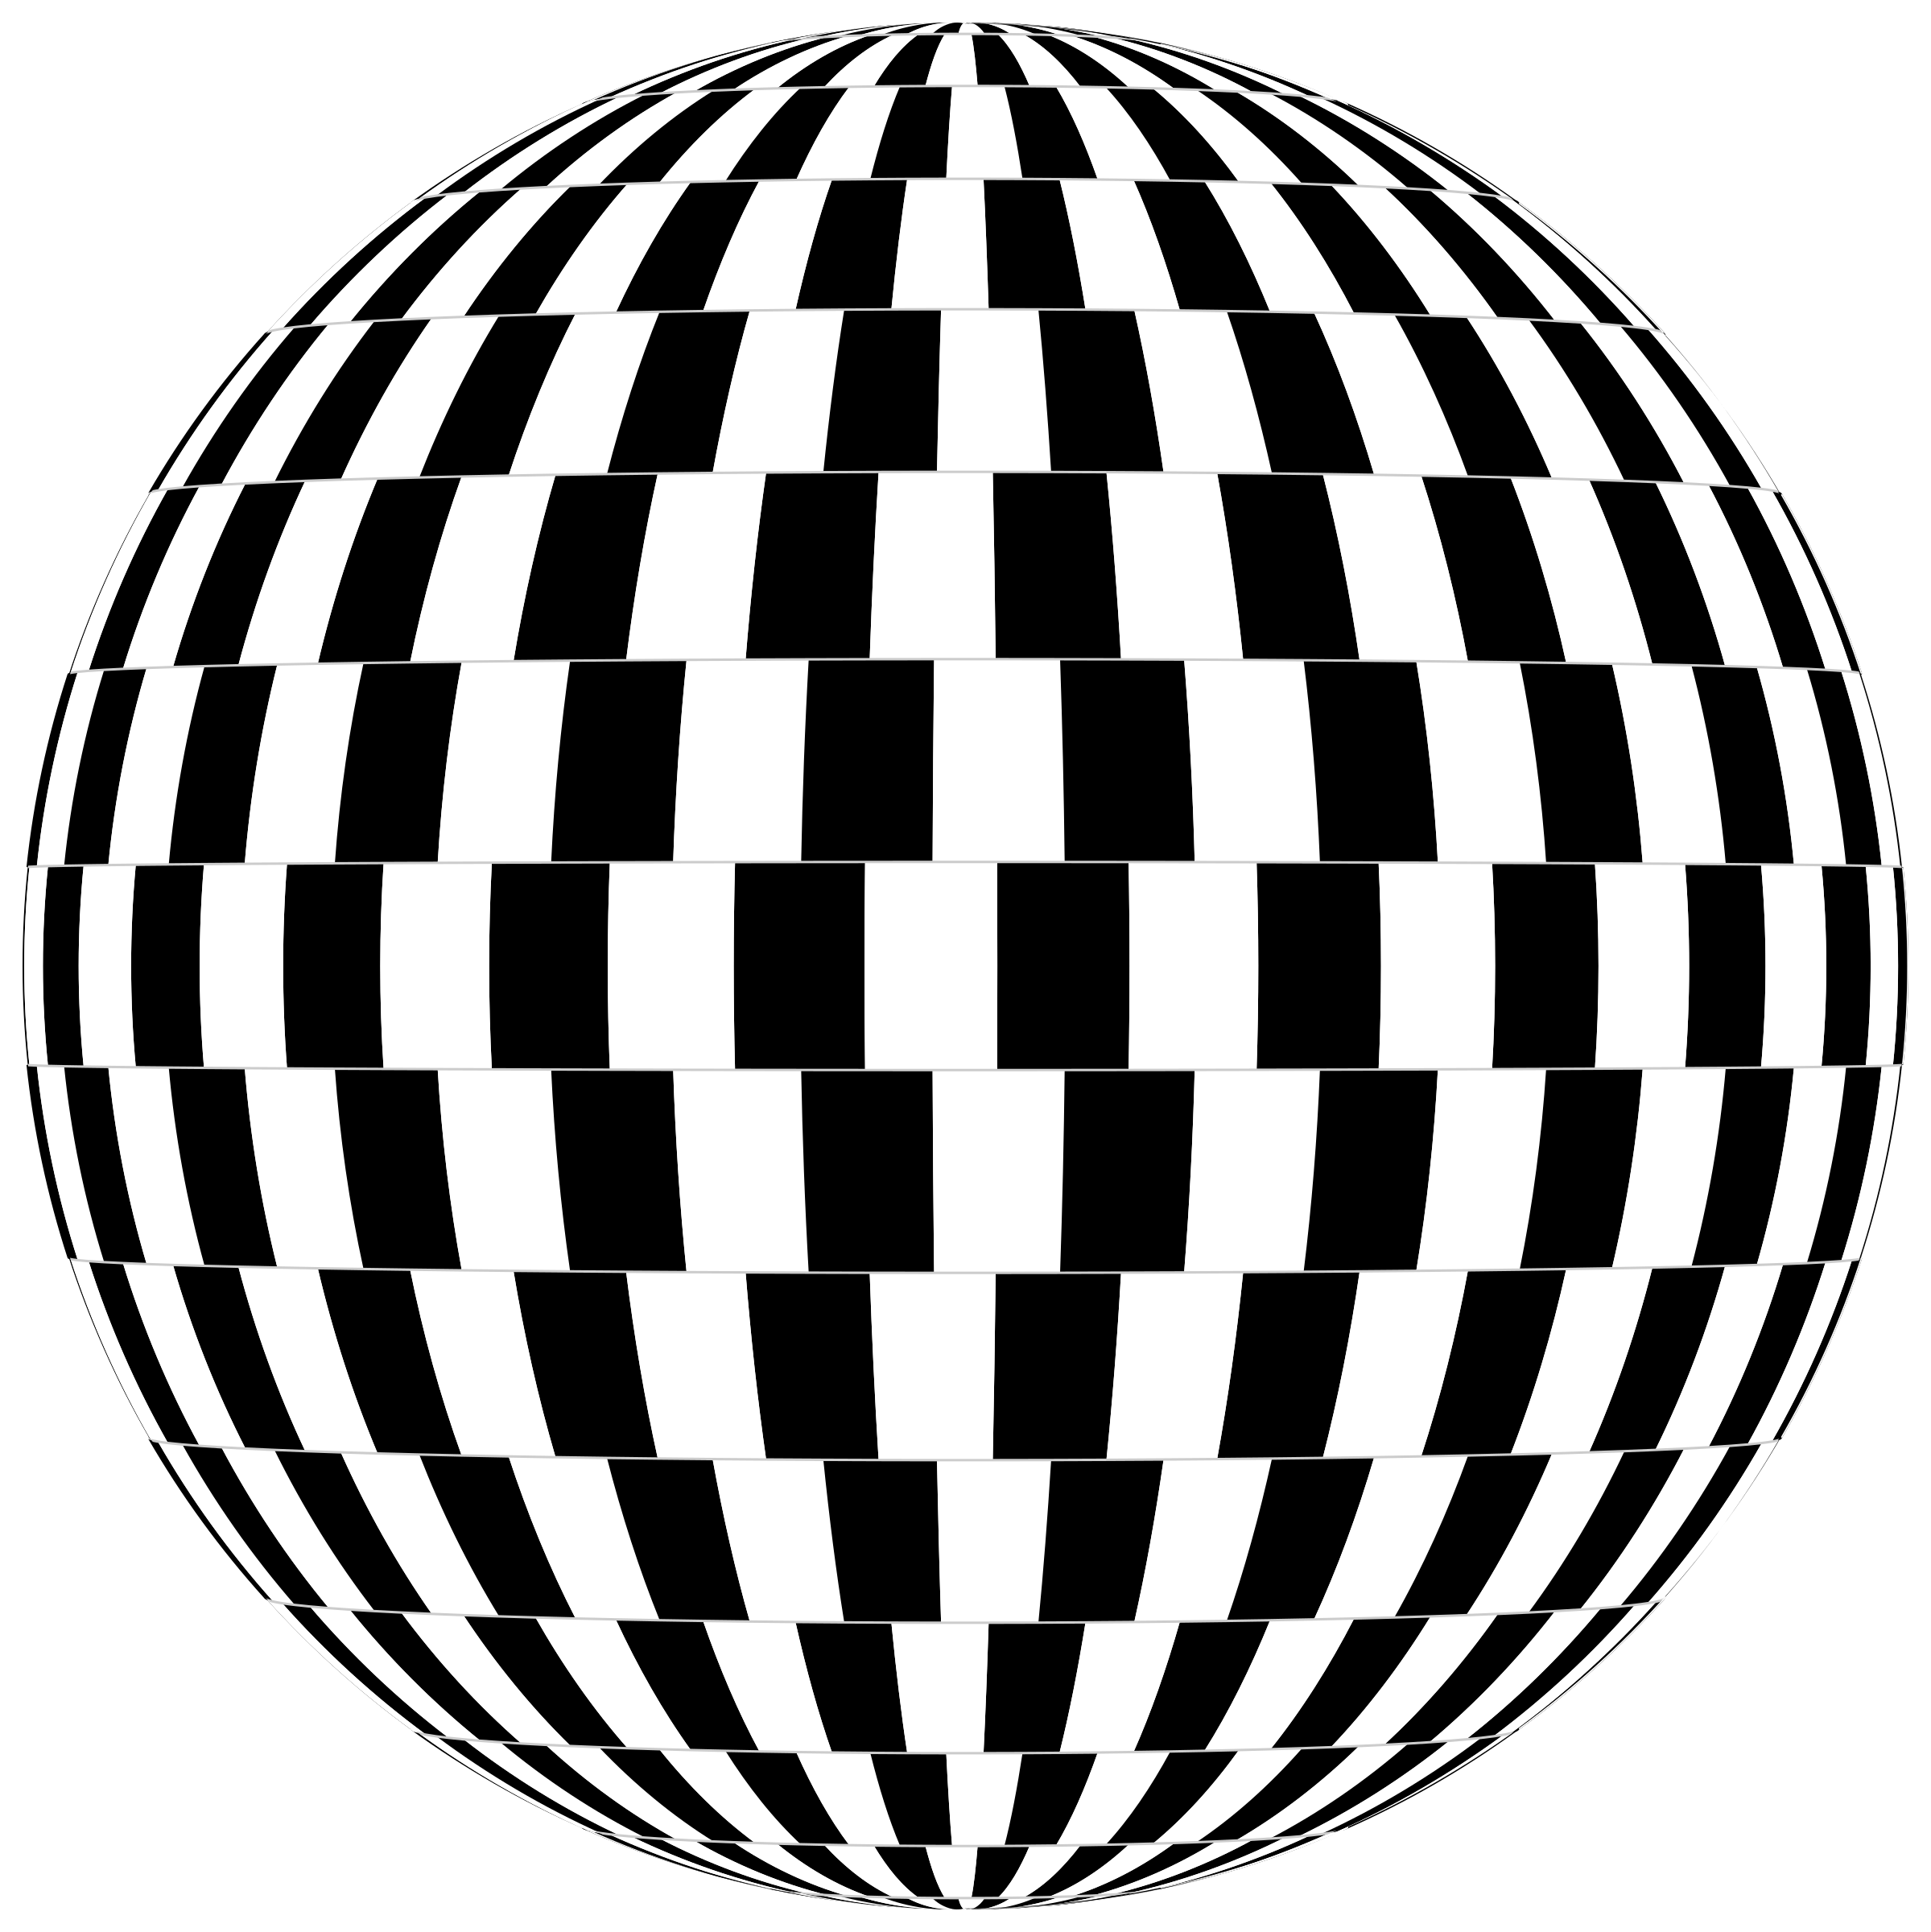 Checkerboard Optical Illusion Sphere by GDJ